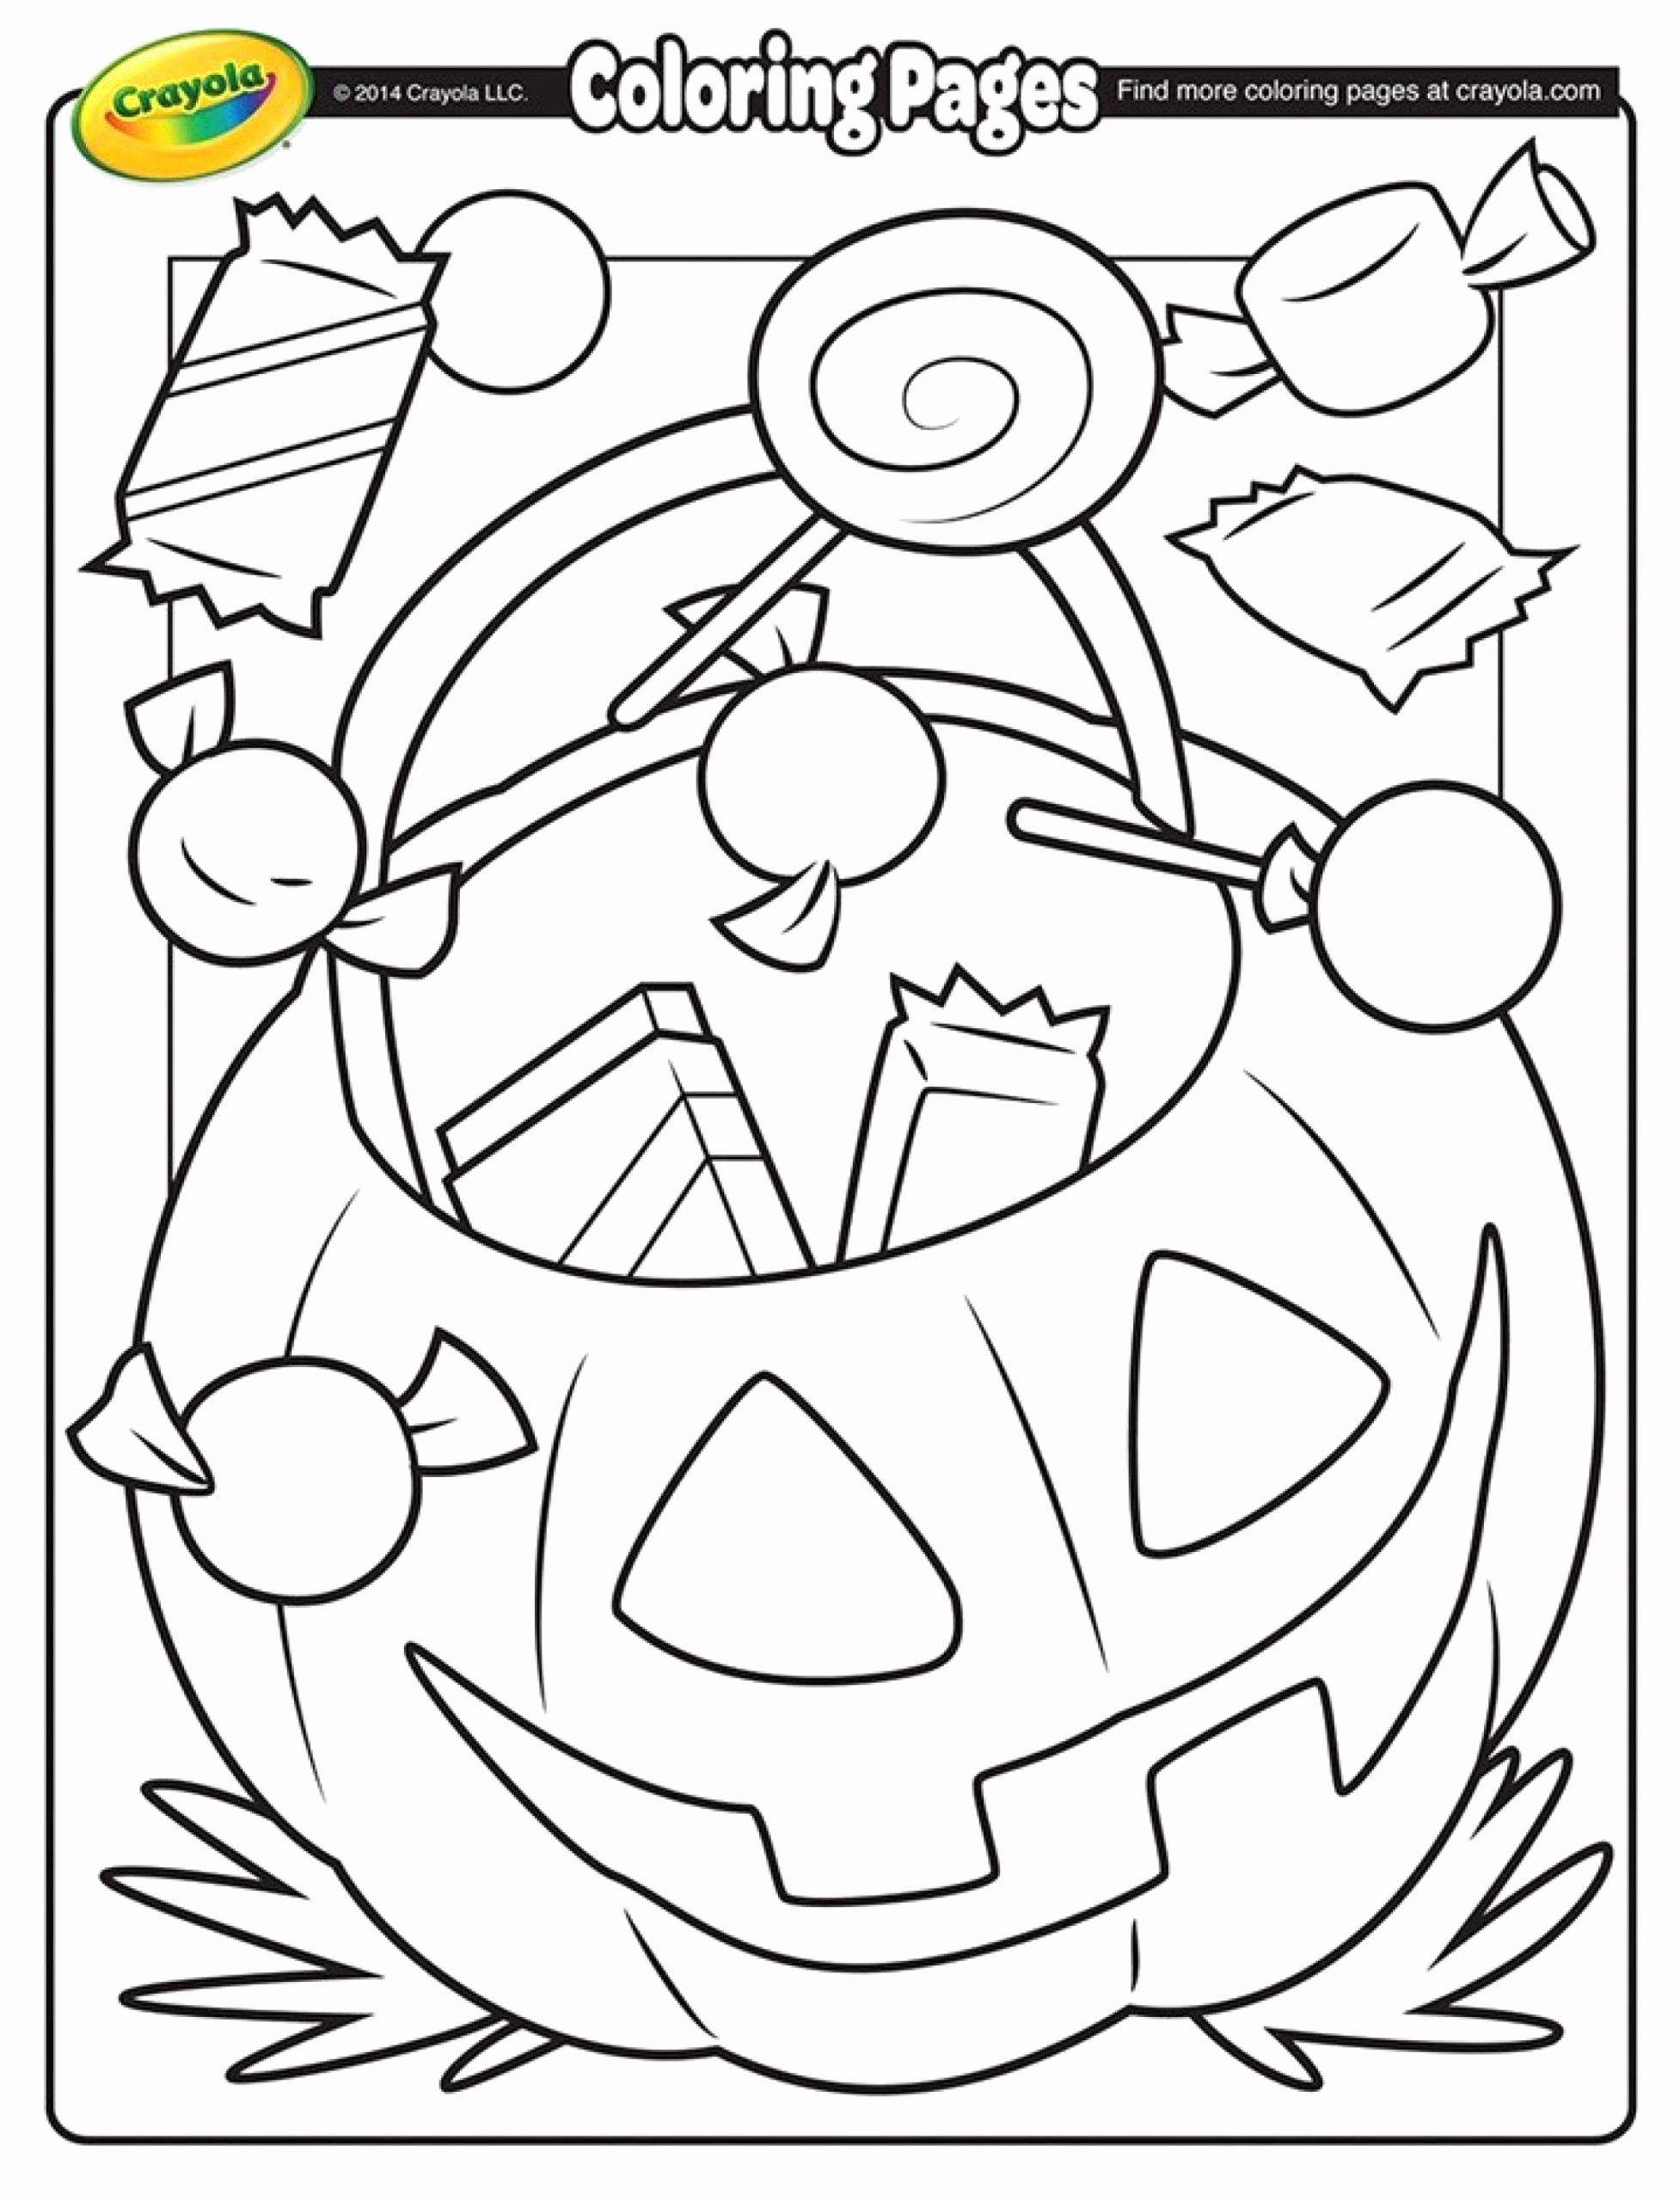 Princess Coloring And Activities Book Elegant Coloring Books Tremendous In 2020 Free Halloween Coloring Pages Crayola Coloring Pages Halloween Coloring Pages Printable